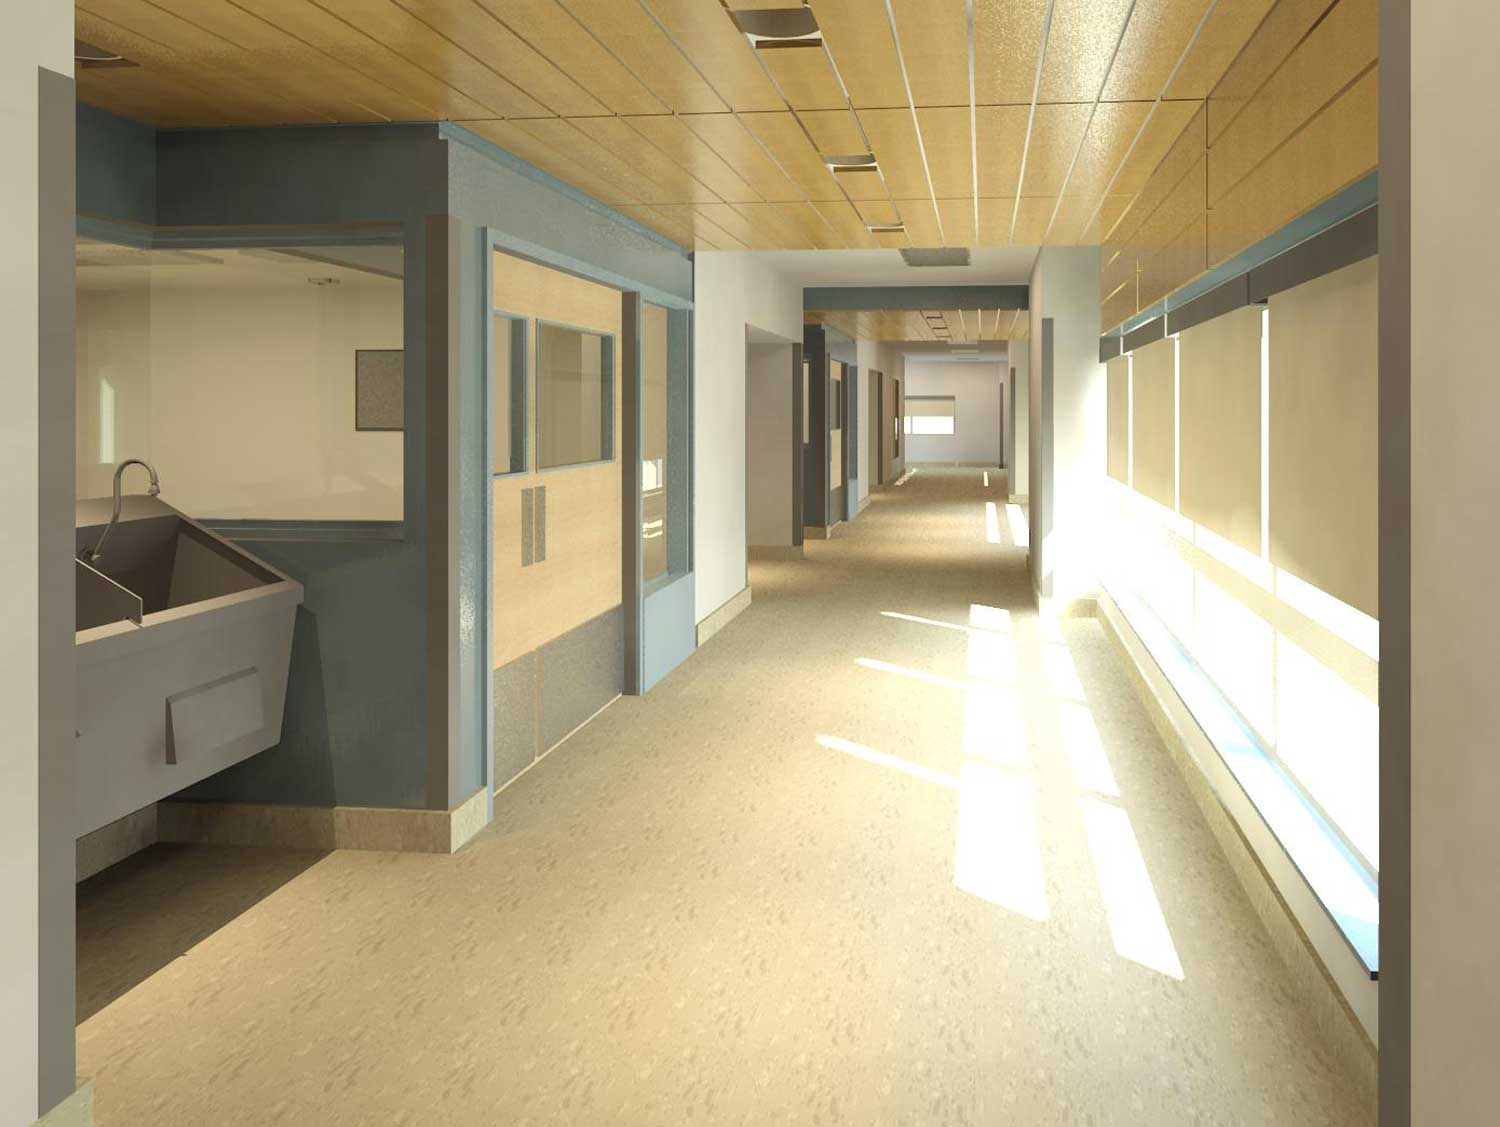 OR Unit Sterile Corridor